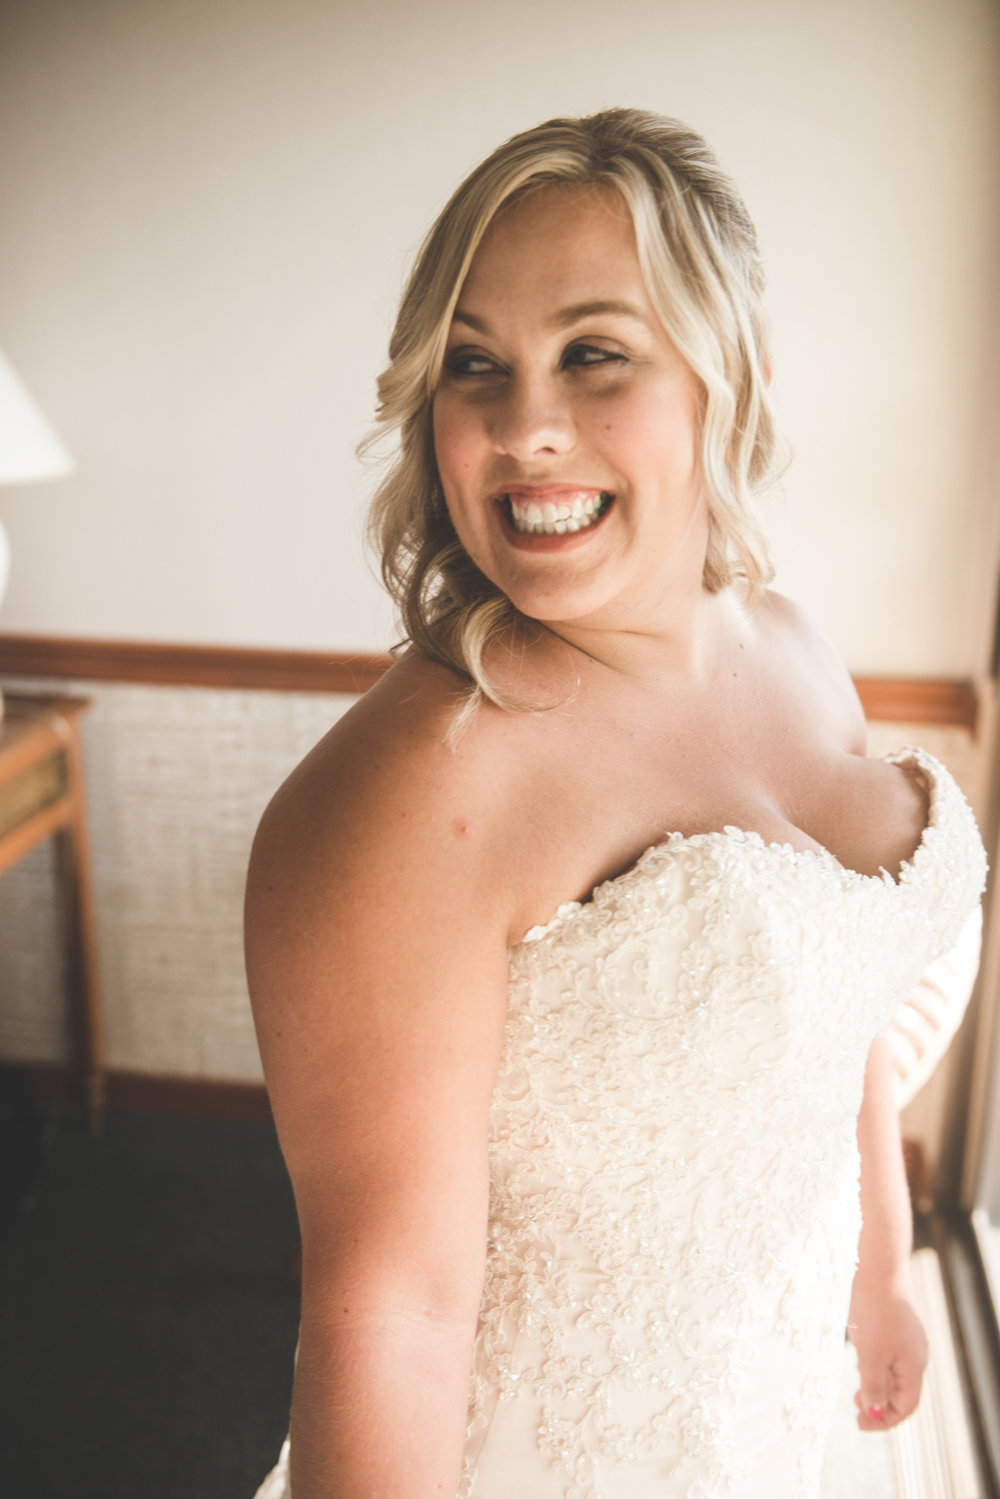 maui bride smiles as she gets ready